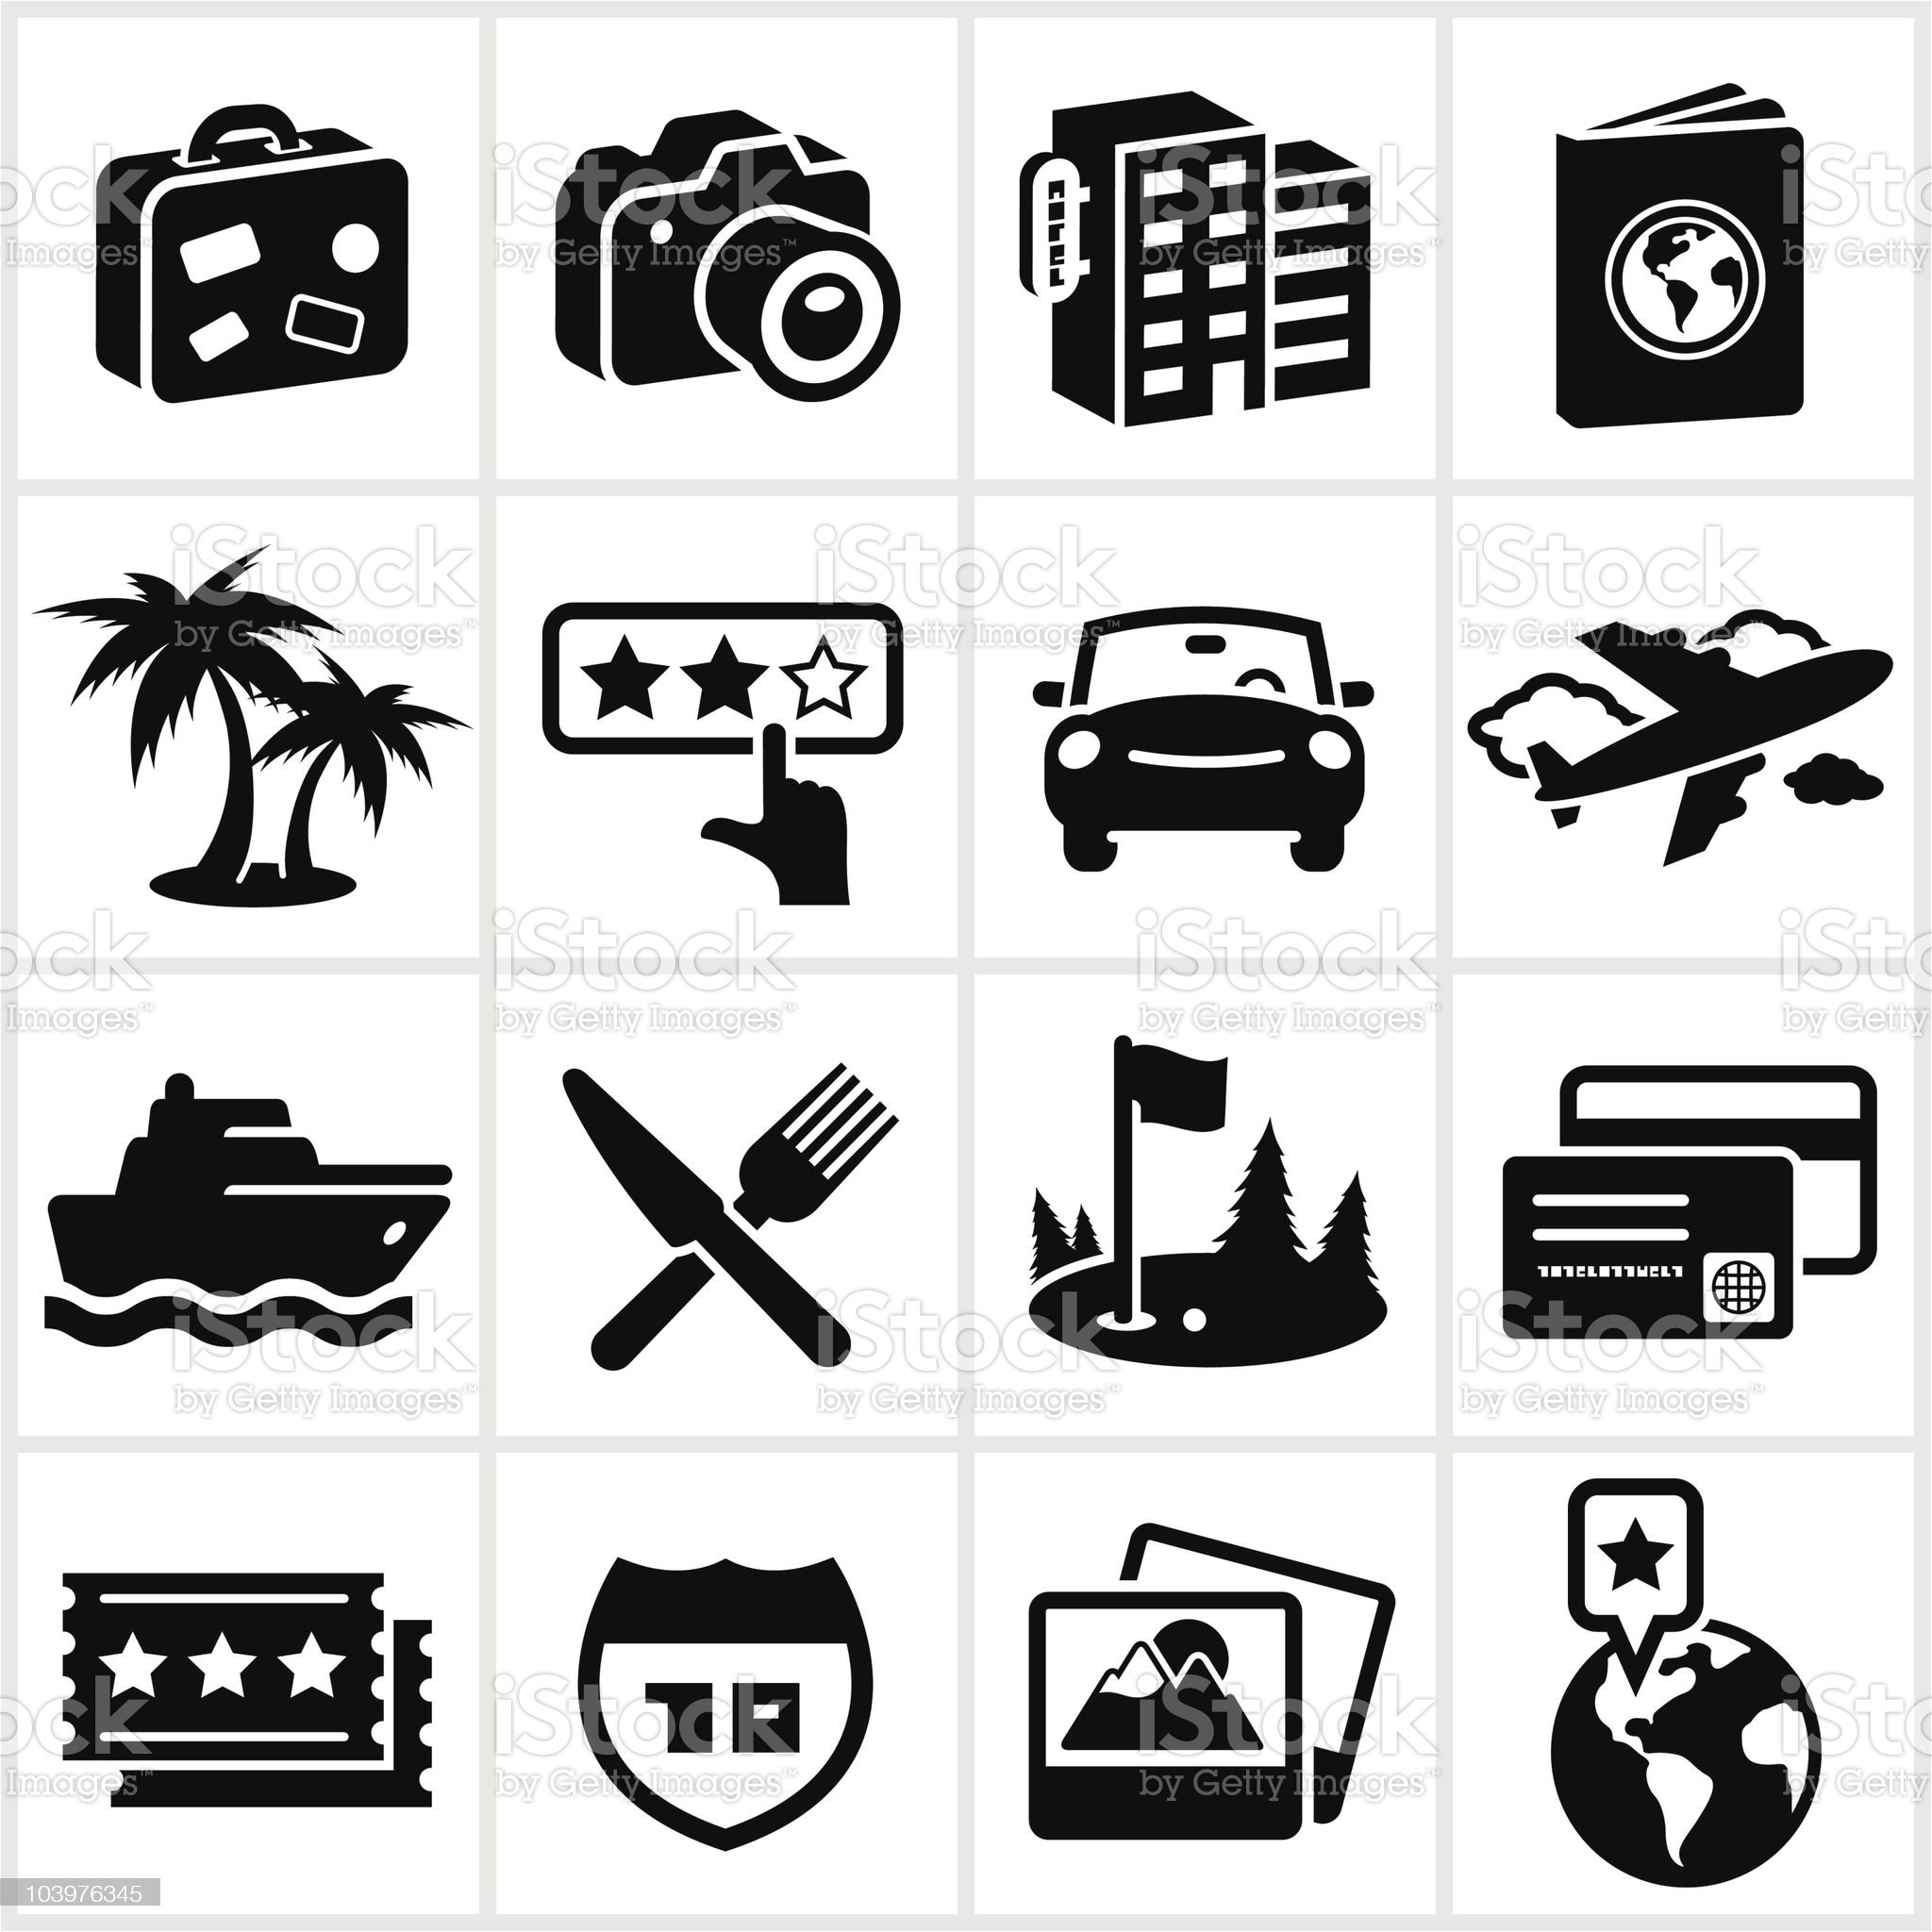 Black Travel and Vacation Icons royalty-free stock vector art